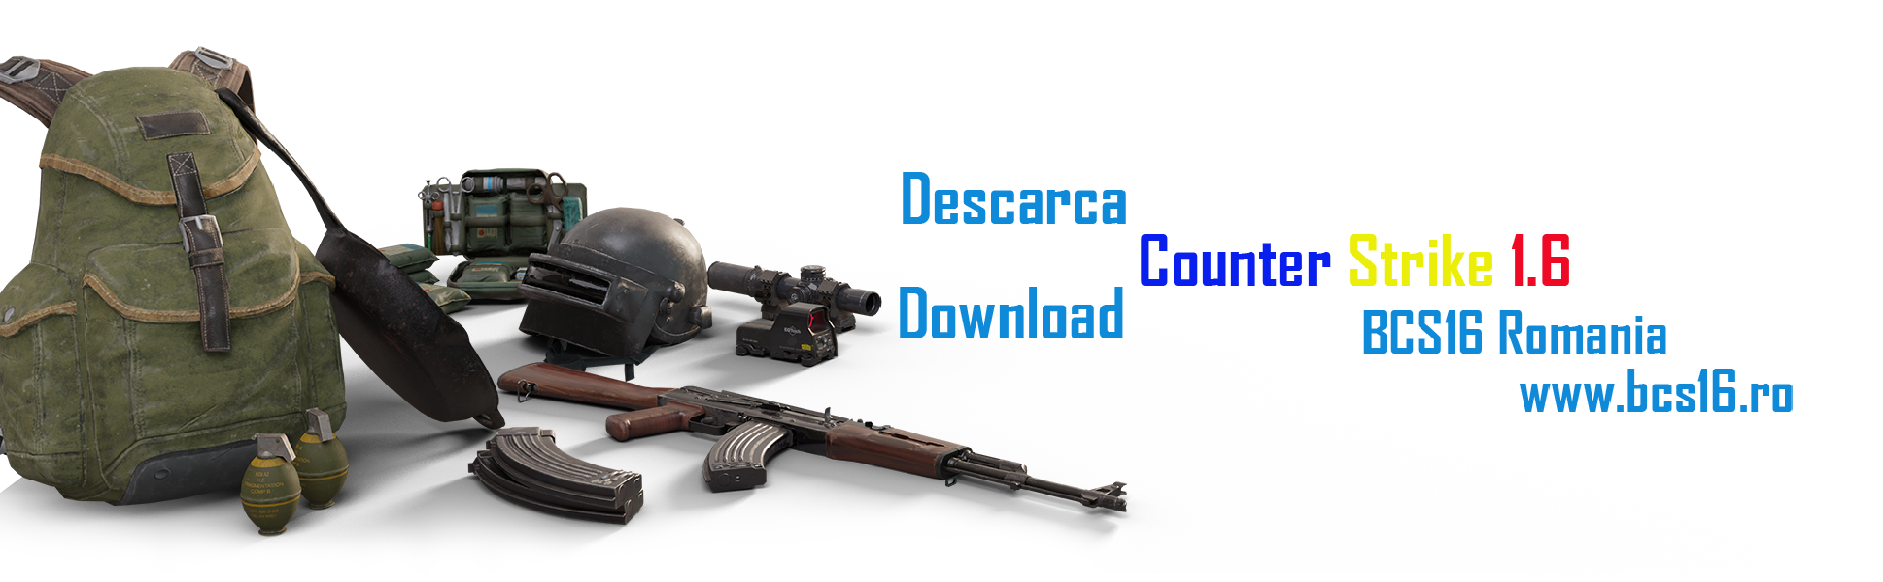 Descarca/Download CS Counter-Strike 1.6 Original - Bcs16 Romania